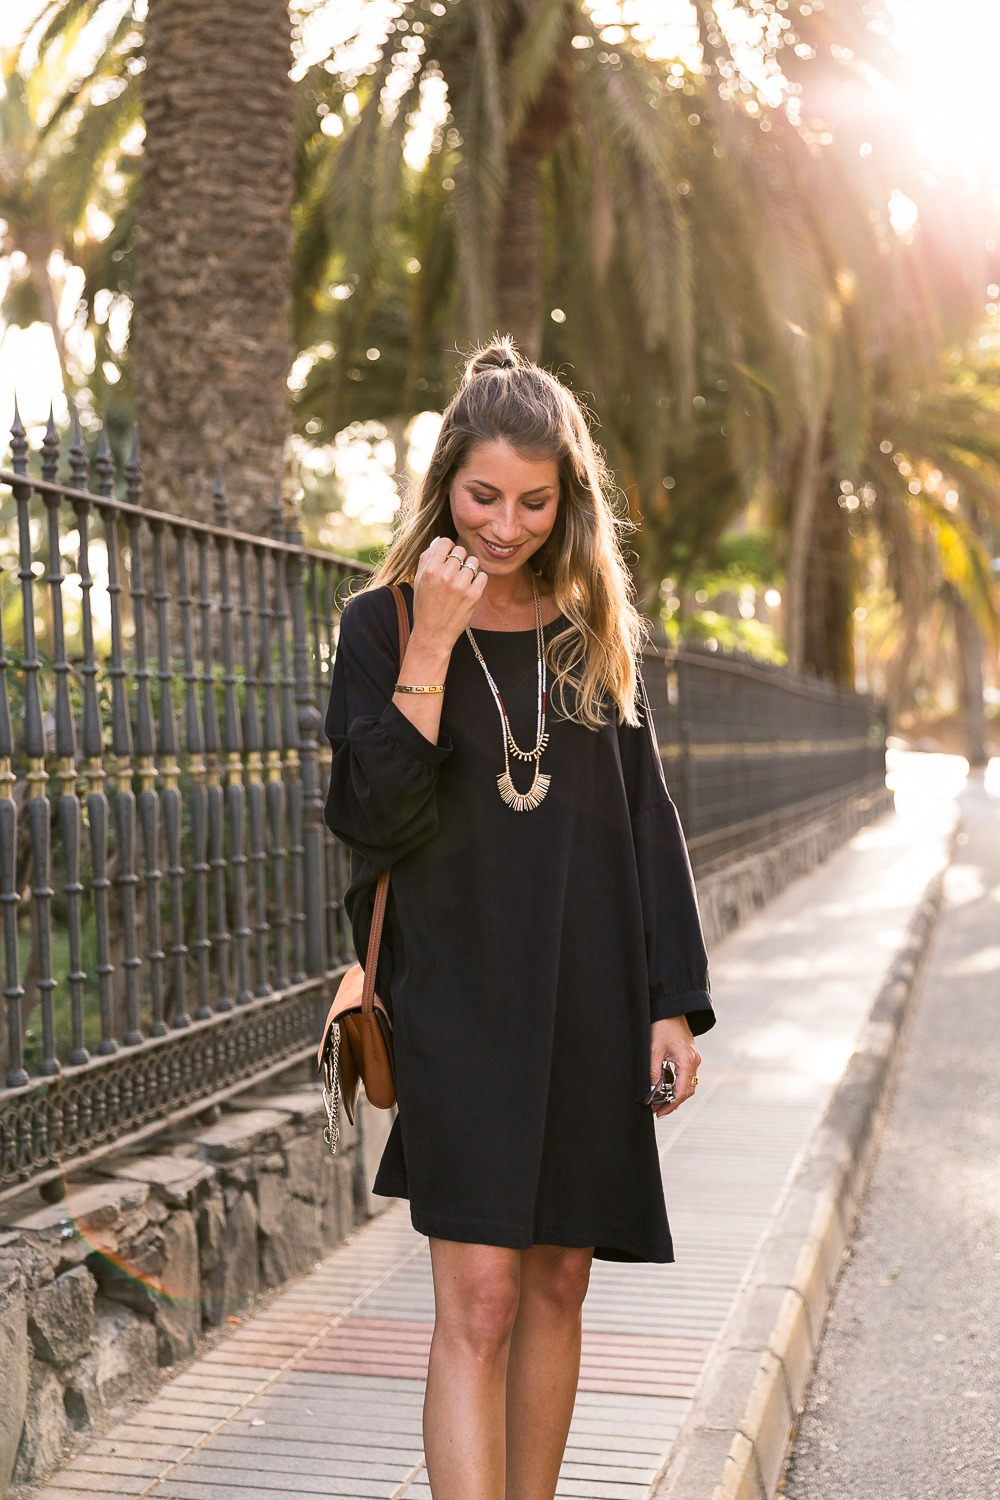 black dress summer outfit fashion blog platform sandals long necklace brown bag chloe chic style